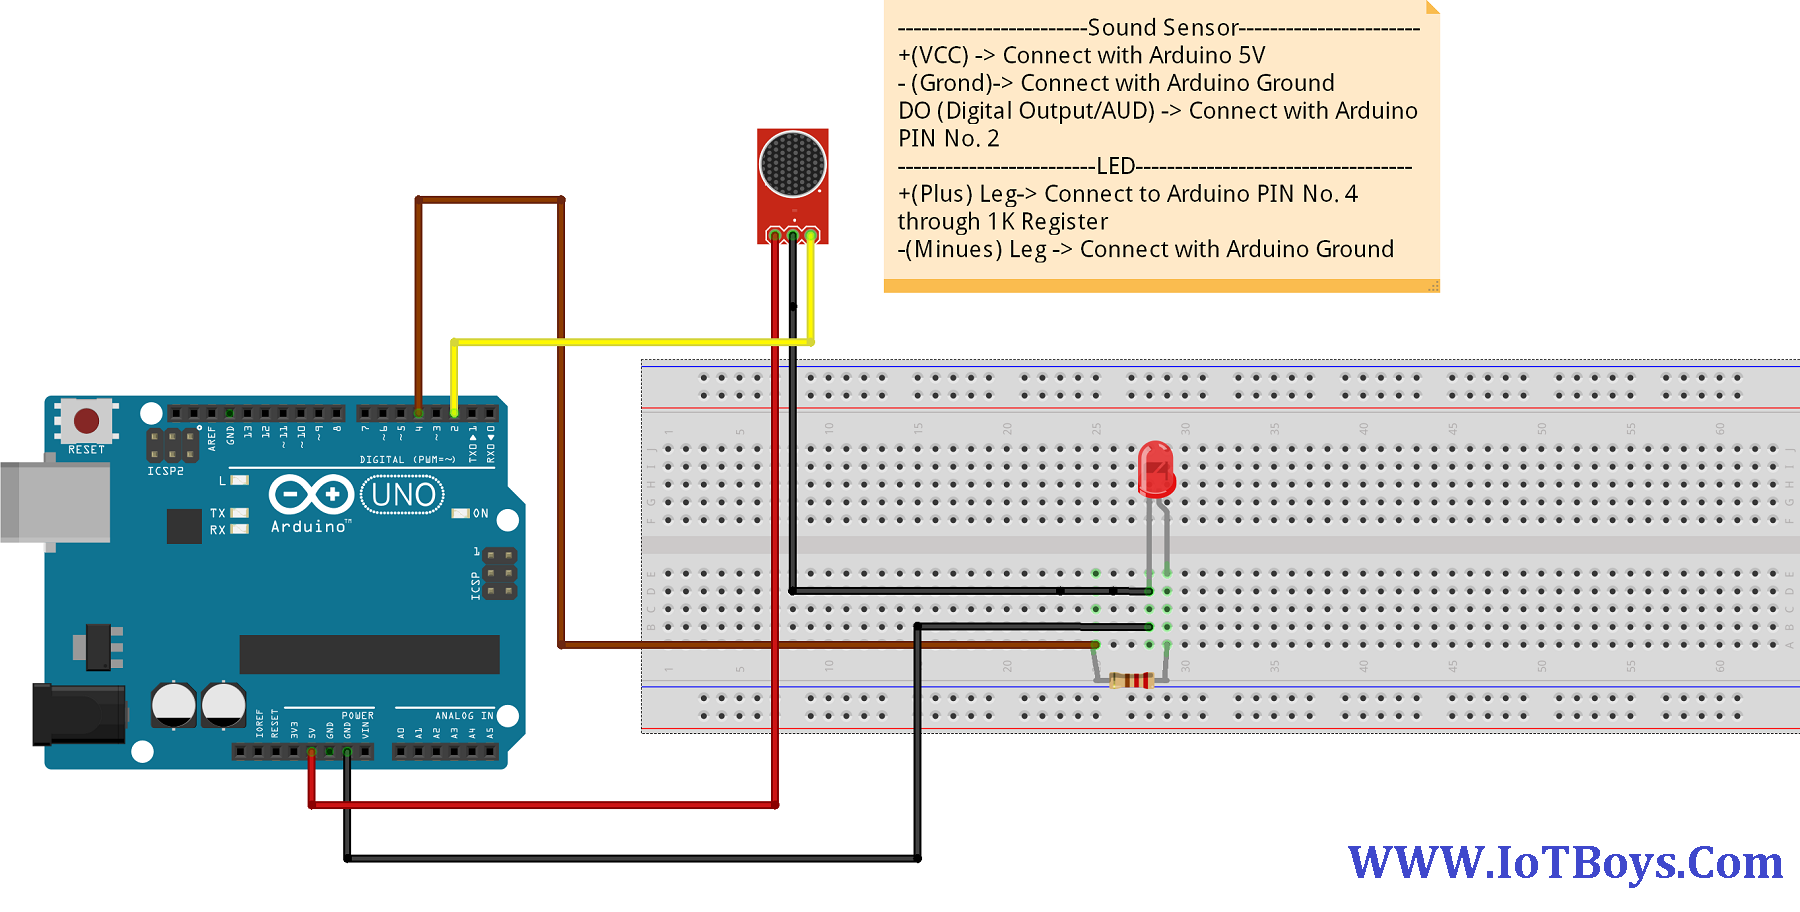 Control Led By Clap Using Arduino And Sound Sensor L293d Pin Diagram Connection Iotboys Com Wiring Wkfols3kjv